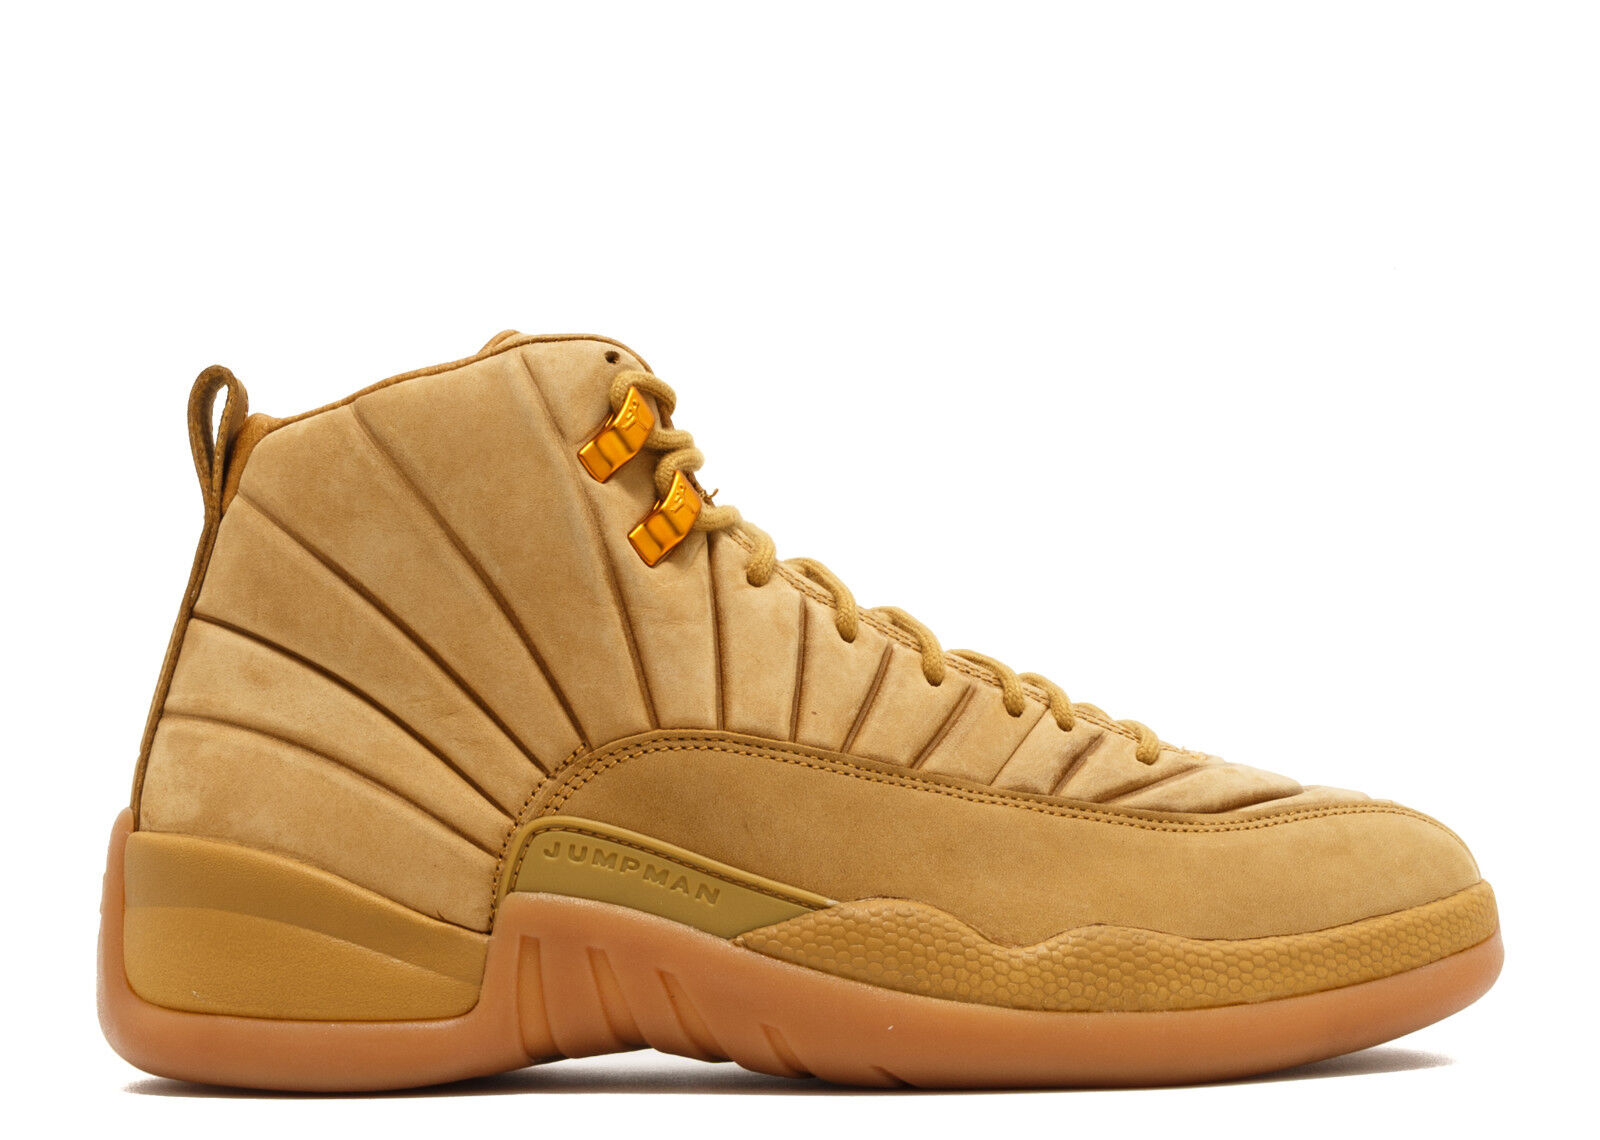 Nike Air Jordan 12 XII Retro PSNY Wheat NYC Comfortable The most popular shoes for men and women